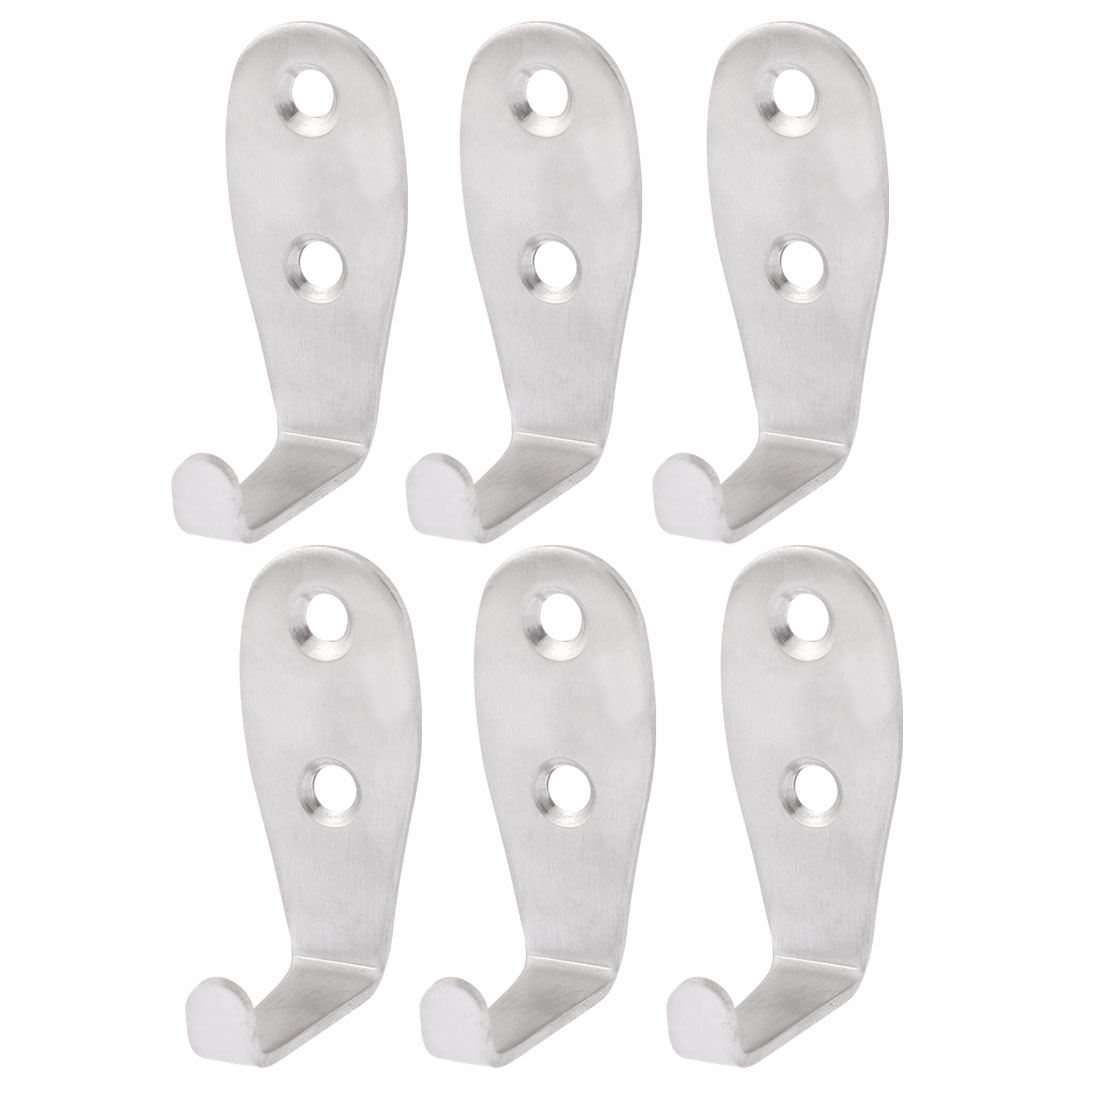 Bathroom Towel Clothes Hat Scarf Wall Mount Hook Hanger 2mm Thickness 6PCS